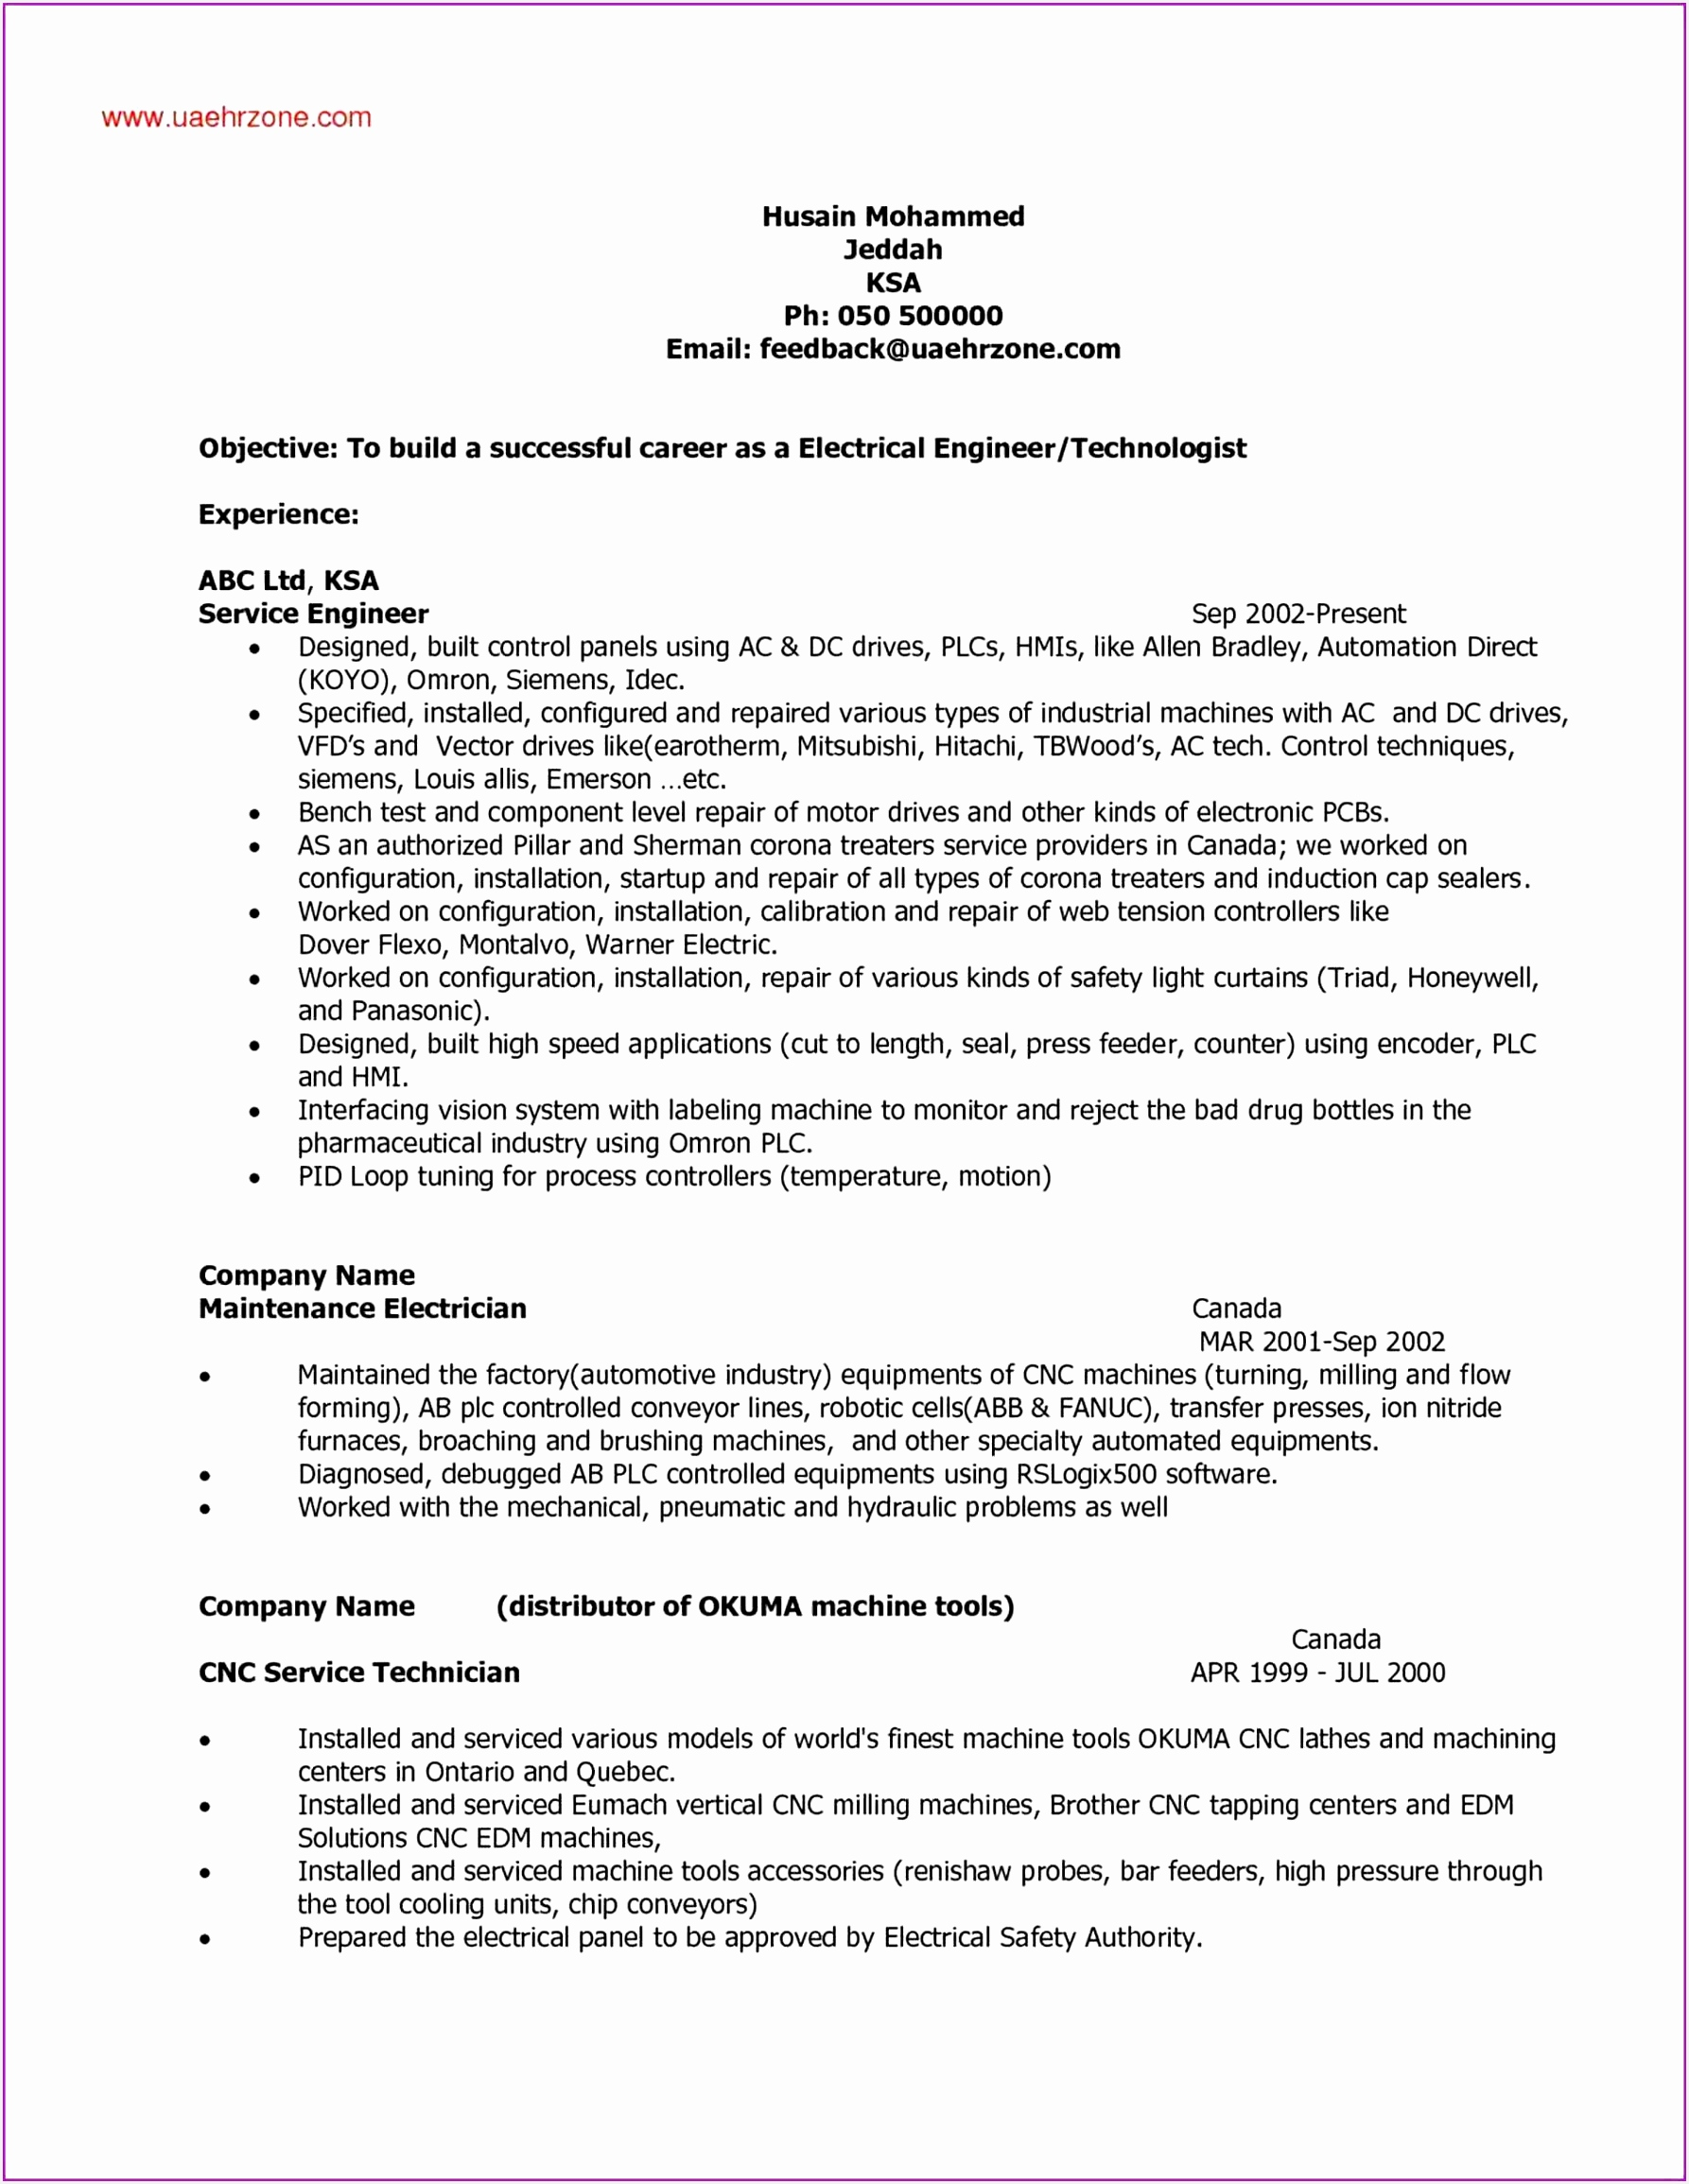 Contract Stress Engineer Sample Resume Baadl Best Of Mechanical Sample Resume Luxury Luxury How to Write A Proper Resume Of Contract Stress Engineer Sample Resume Ooj3g Luxury Resume Examples Mechanical Engineer Archives Margorochelle